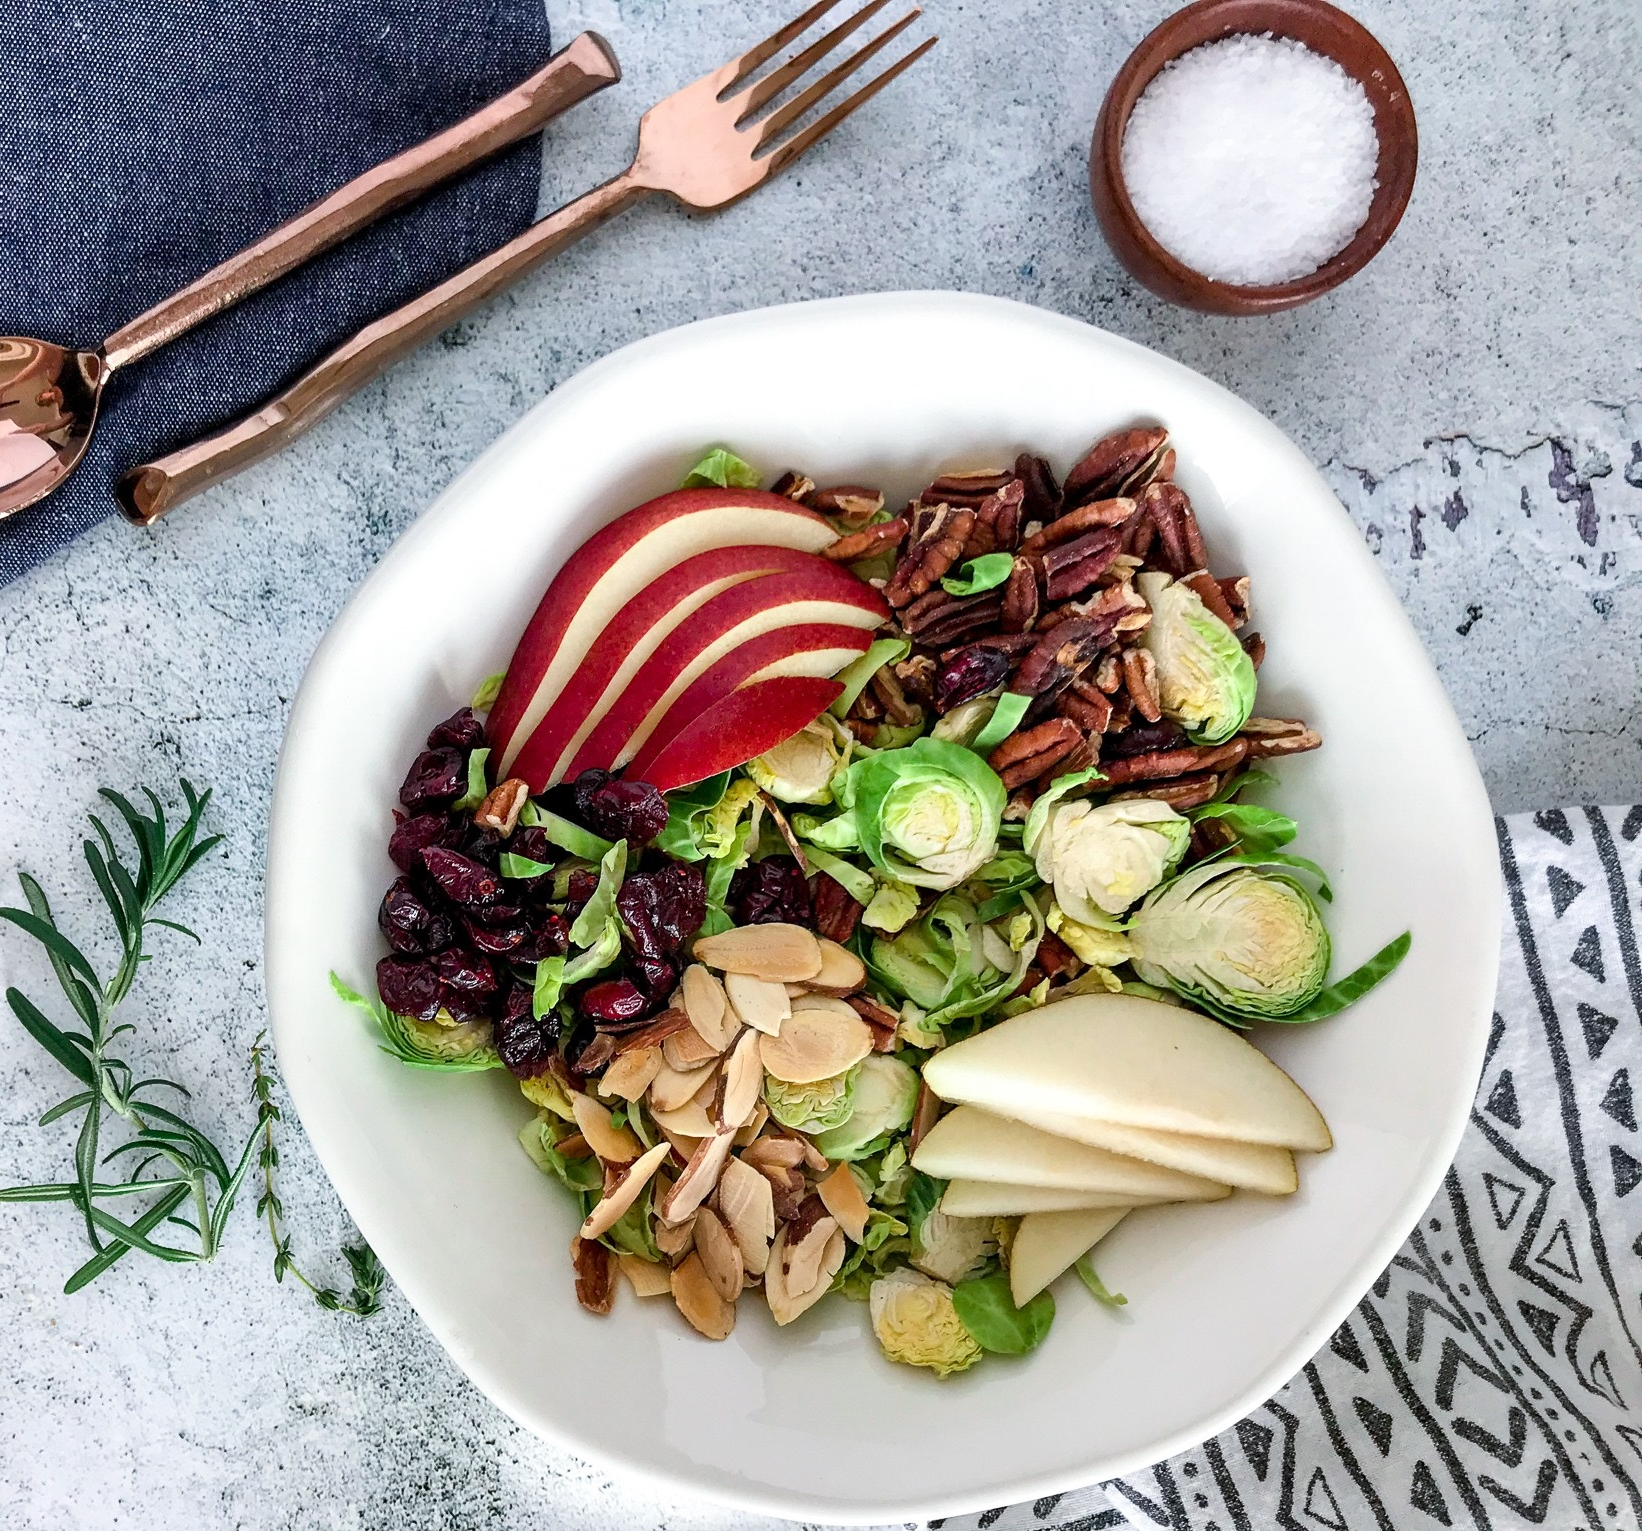 Healthy Brussel Sprout Salad with a Pear Vinaigrette